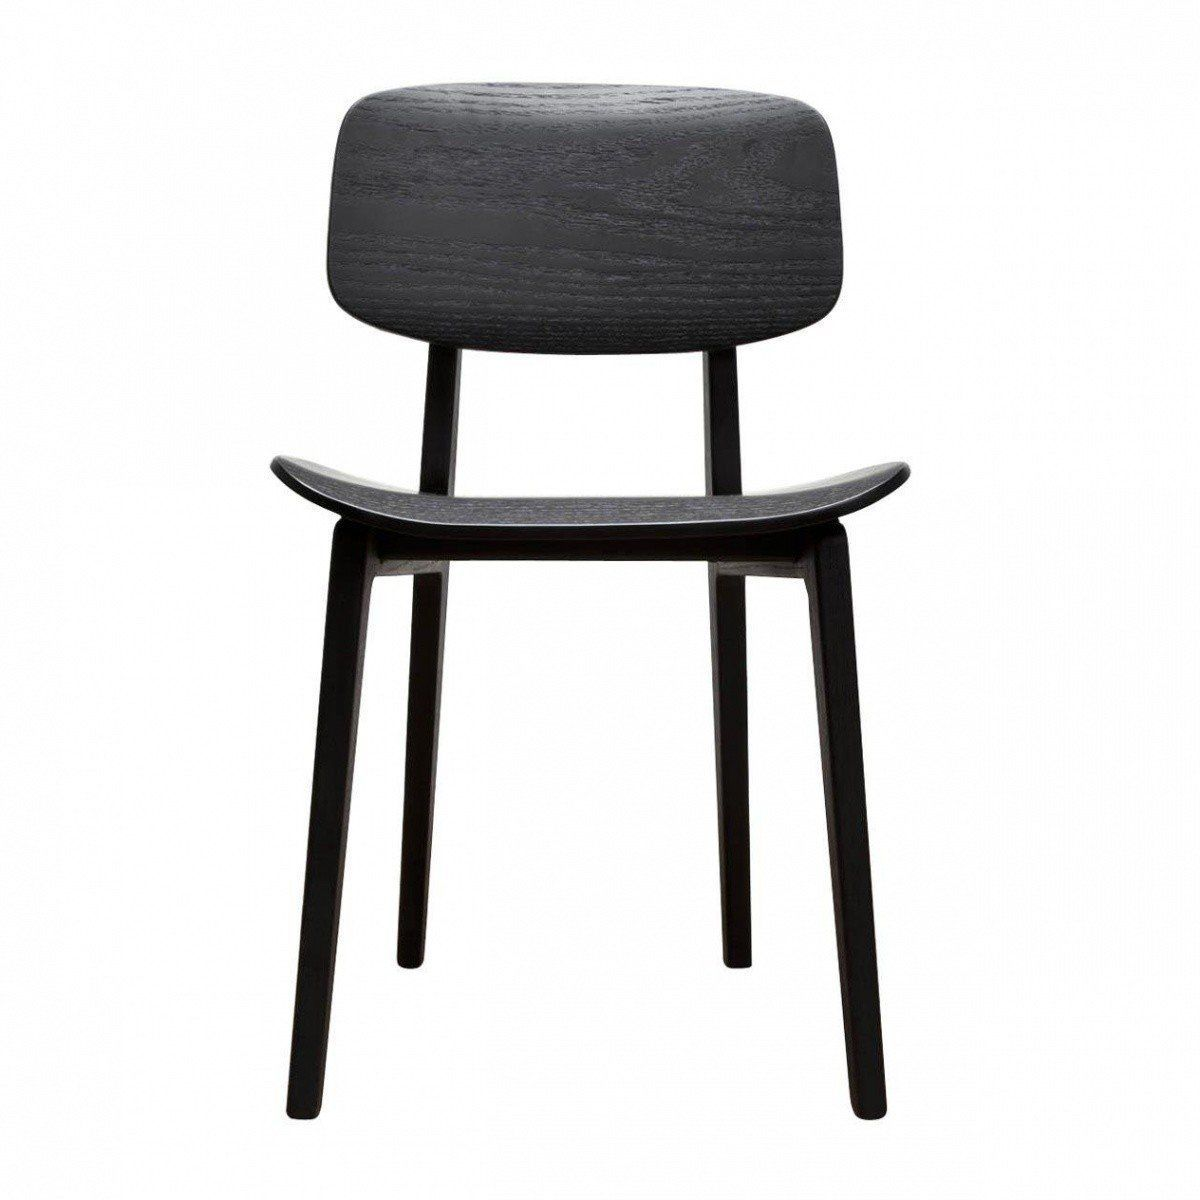 Ny11 new york dining chair stoel norr 11 for Stoel eleven